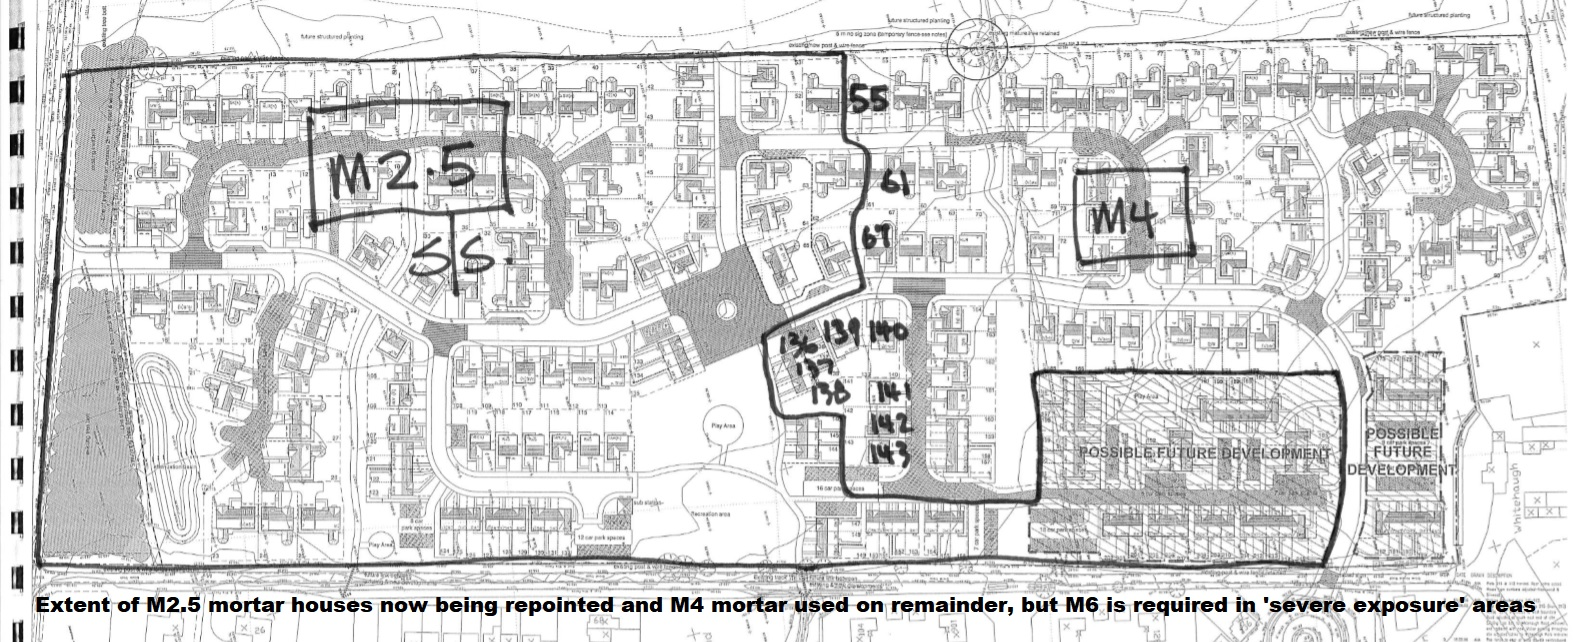 Peebles site plan showing extent of homes Taylor Wimpey built using incorrect M2.5 mortar